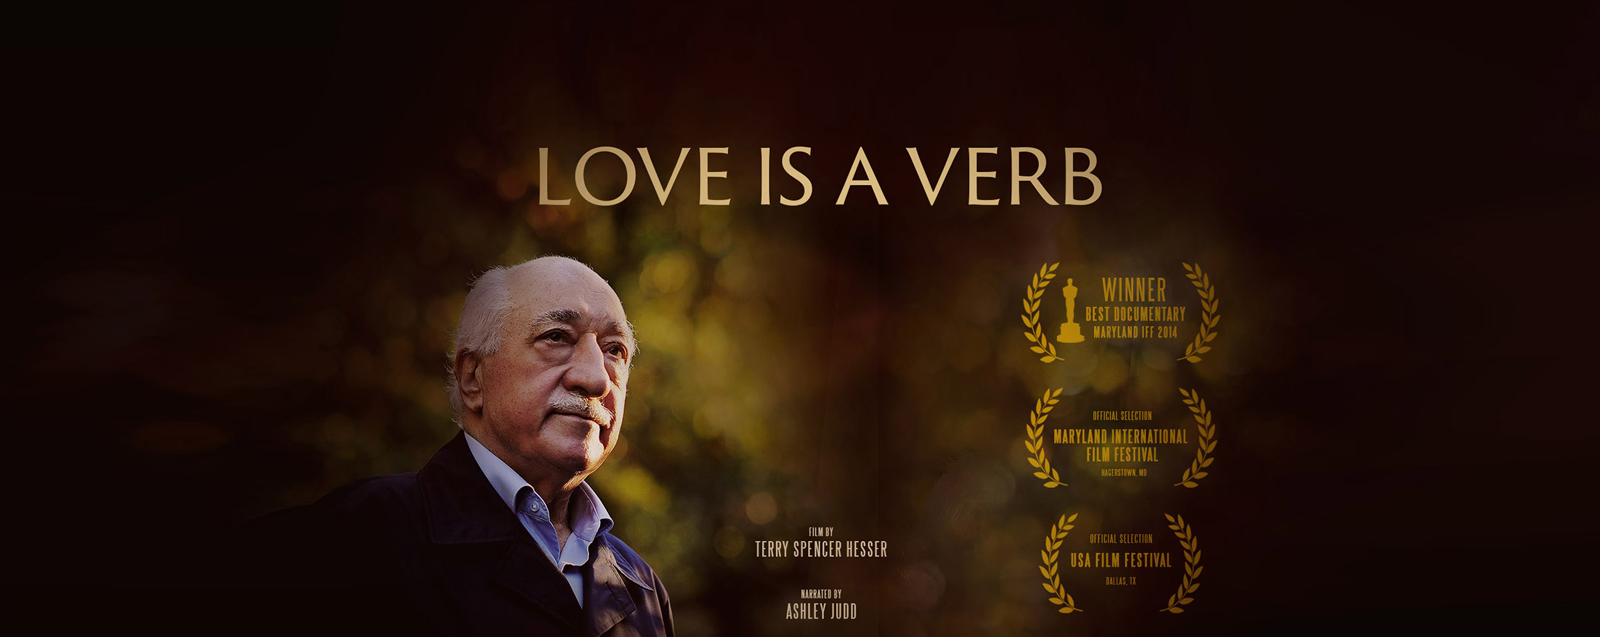 A VIEWING OF: LOVE IS A VERB